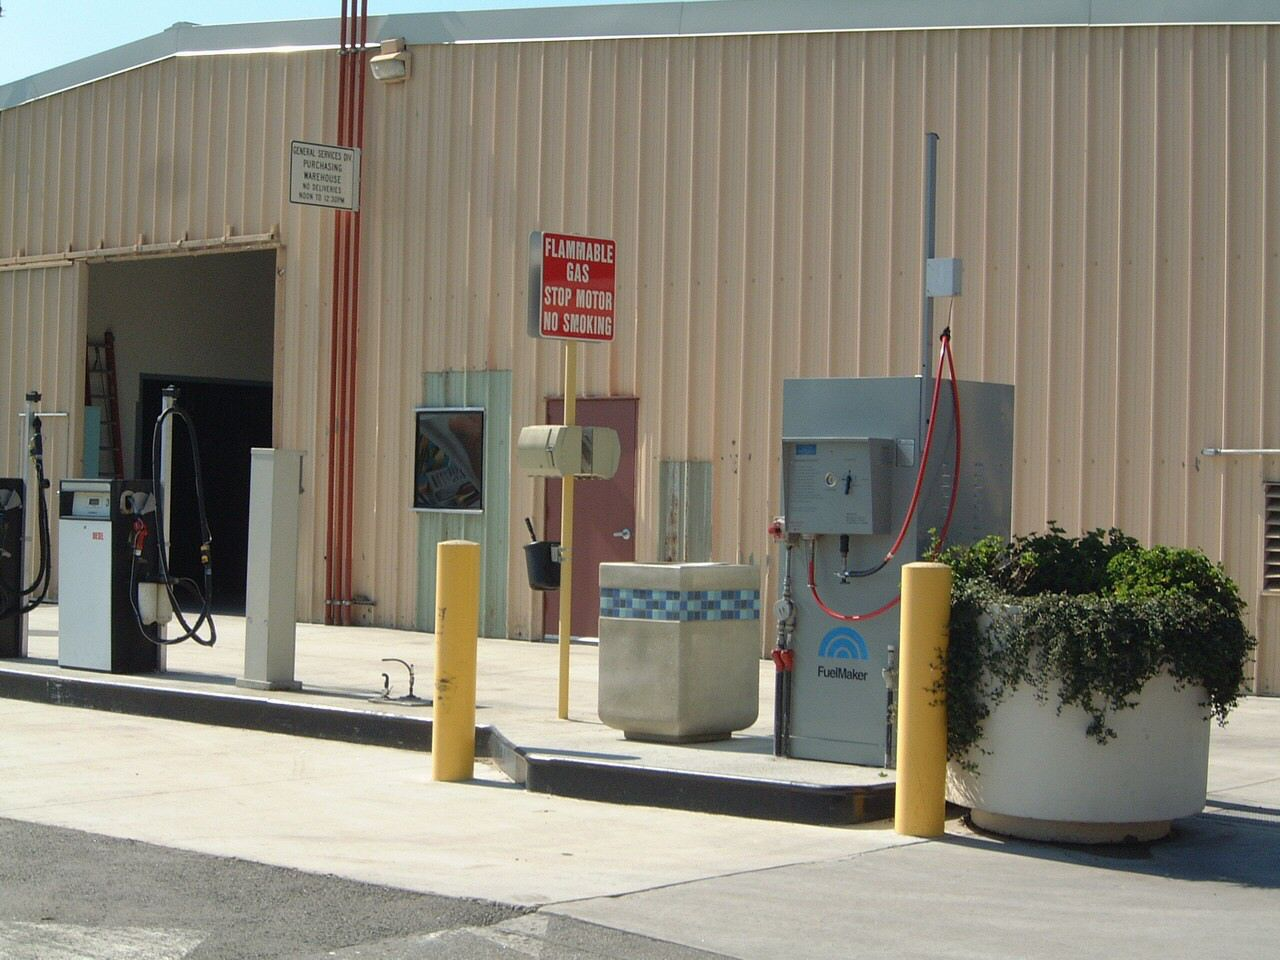 CNG Services of Arizona - Arizona Dealer for FuelMaker